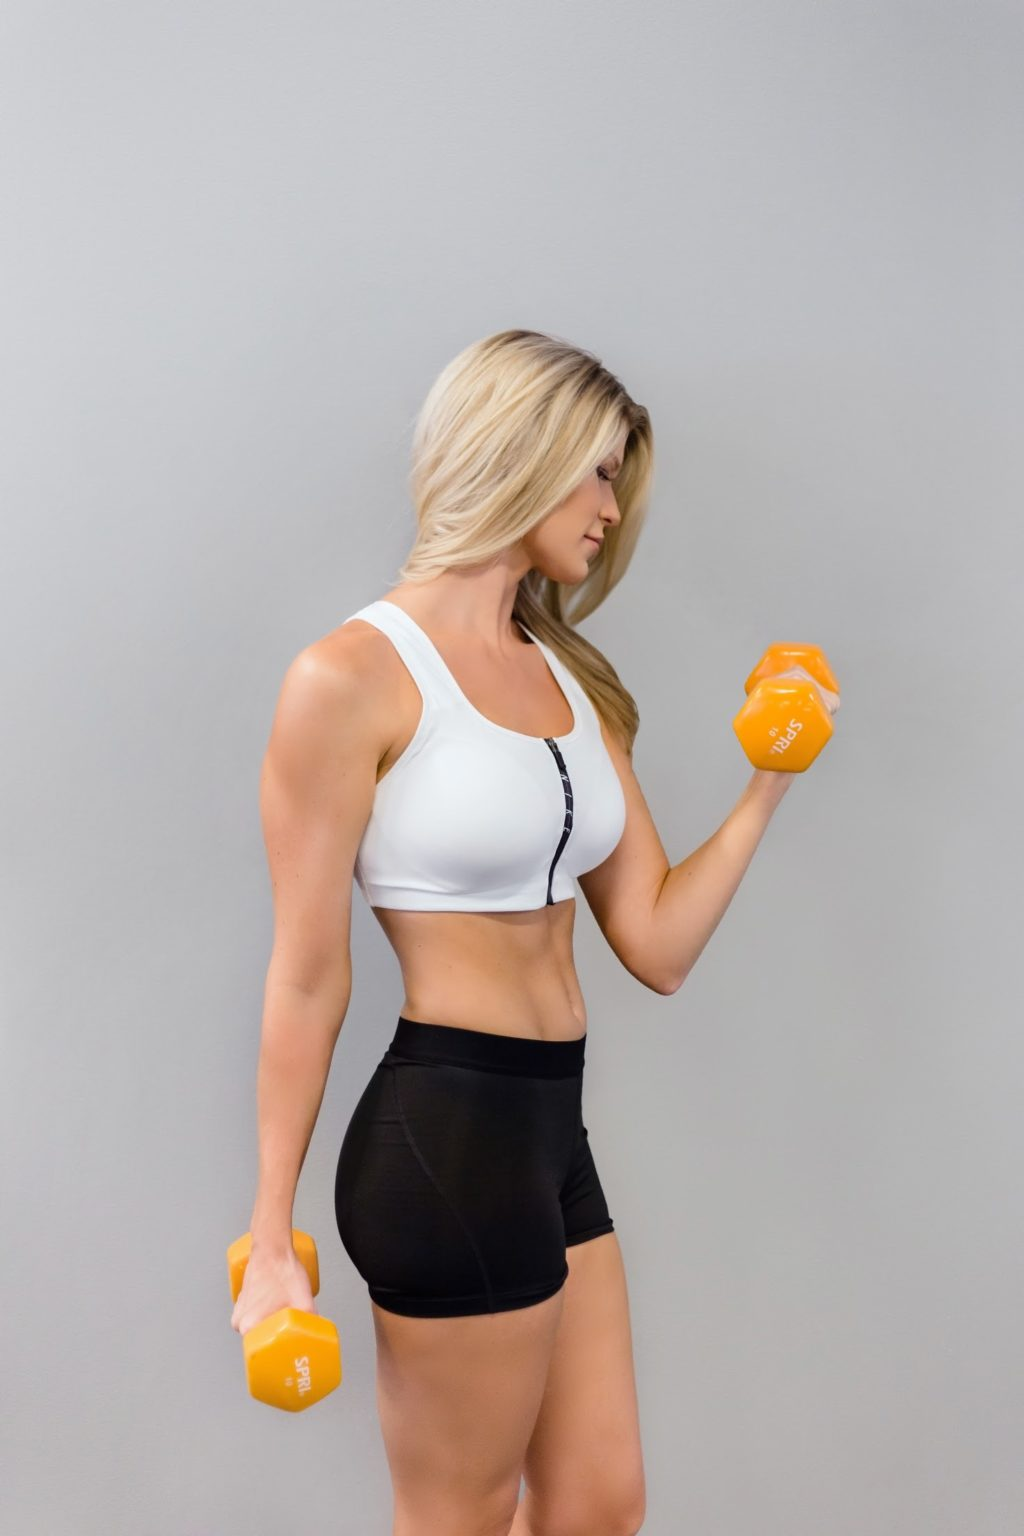 Personal Trainer Chicago, Illinois - Hope Meyers